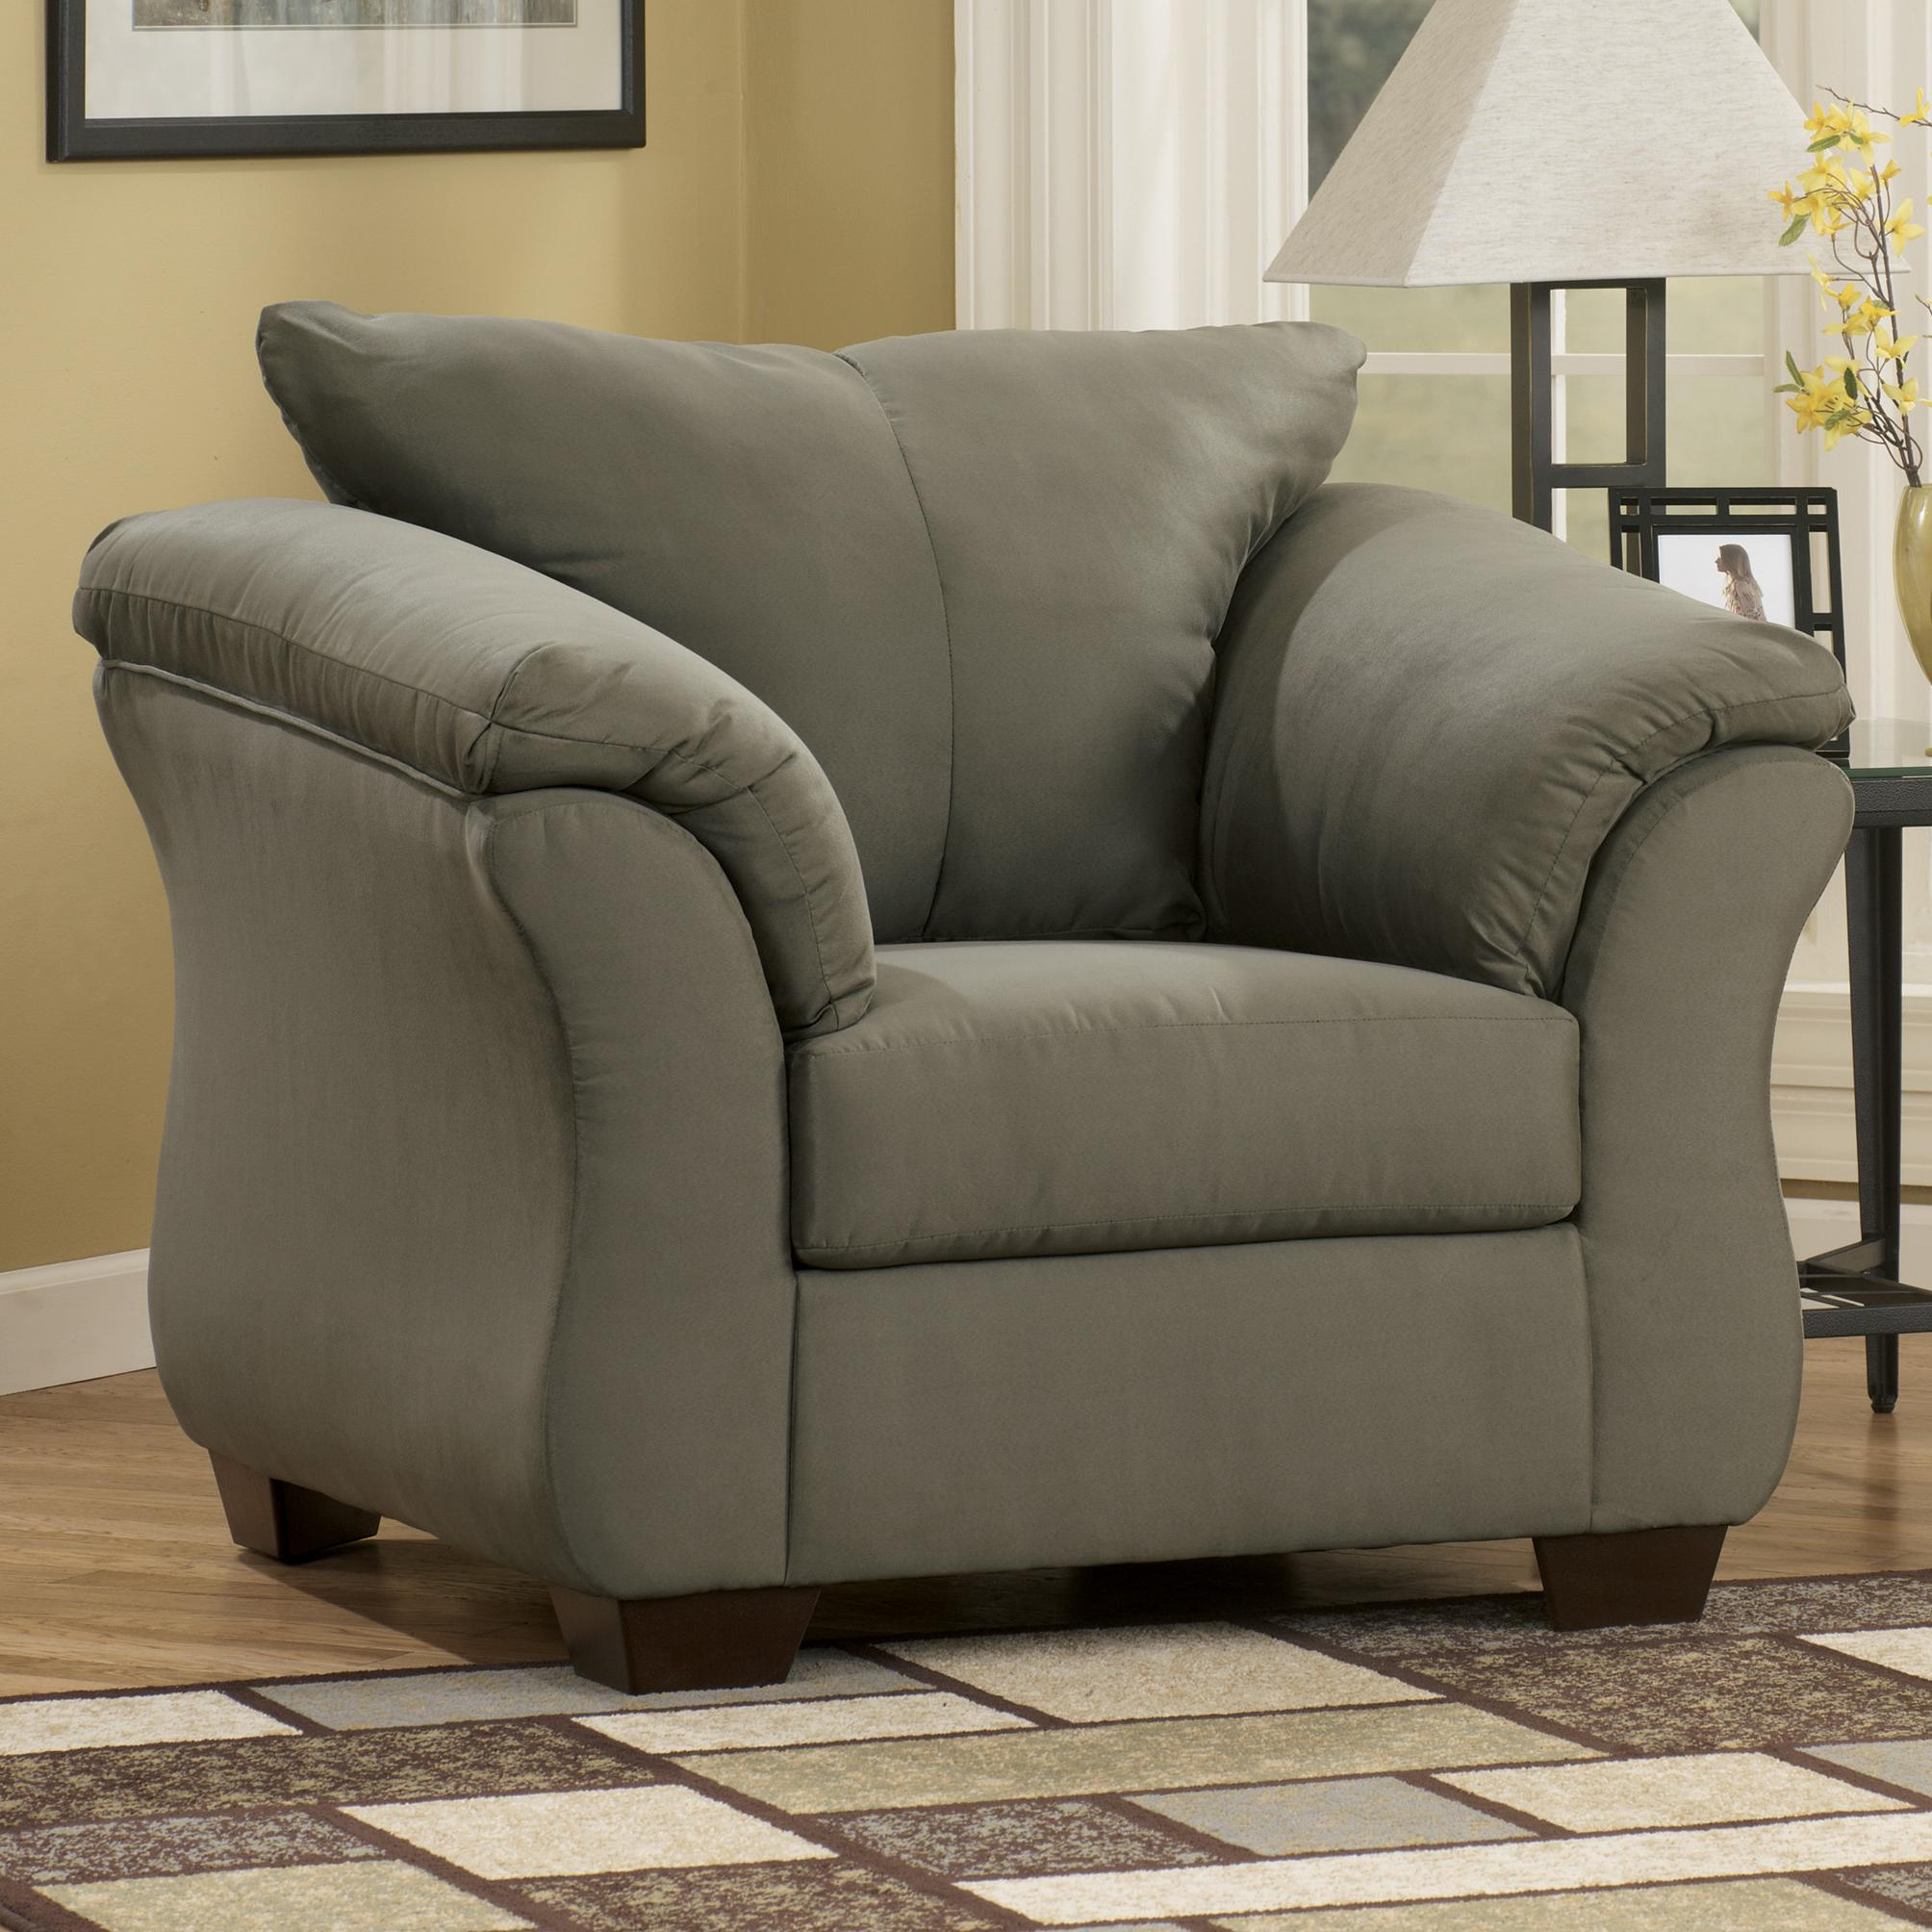 Signature Design by Ashley Darcy - Sage Upholstered Chair - Item Number: 7500320